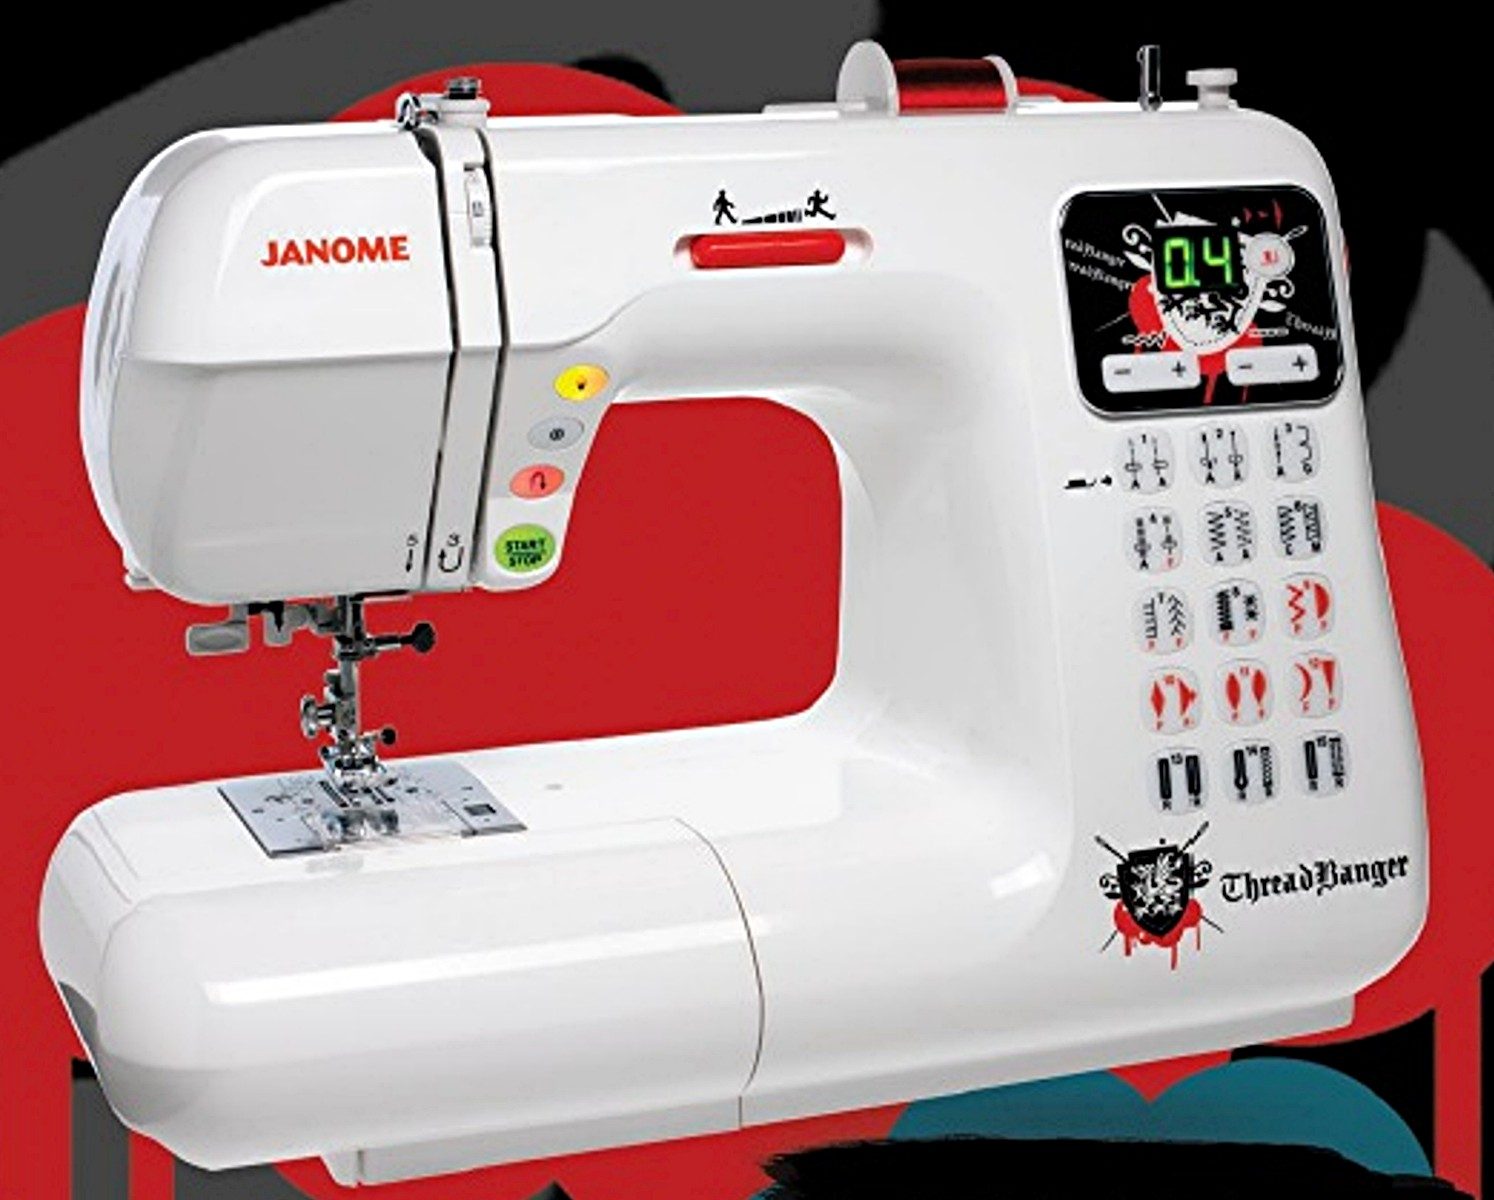 threadbanger sewing machine